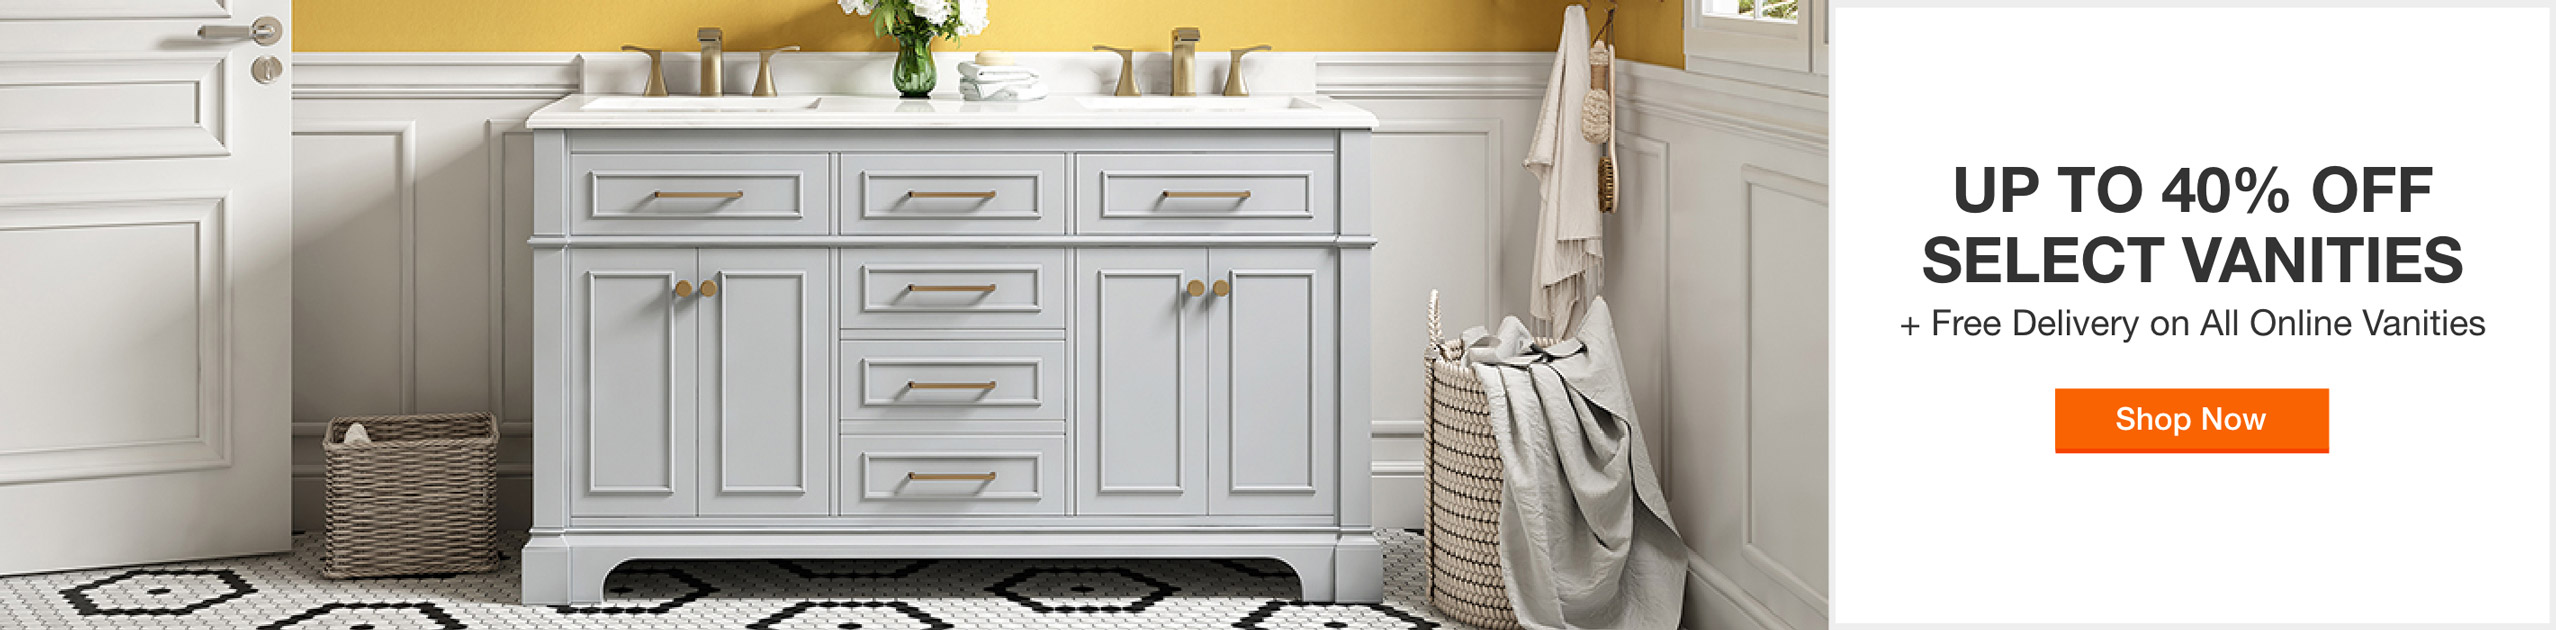 Up to 40% off select vanities plus free delivery on all online vanities